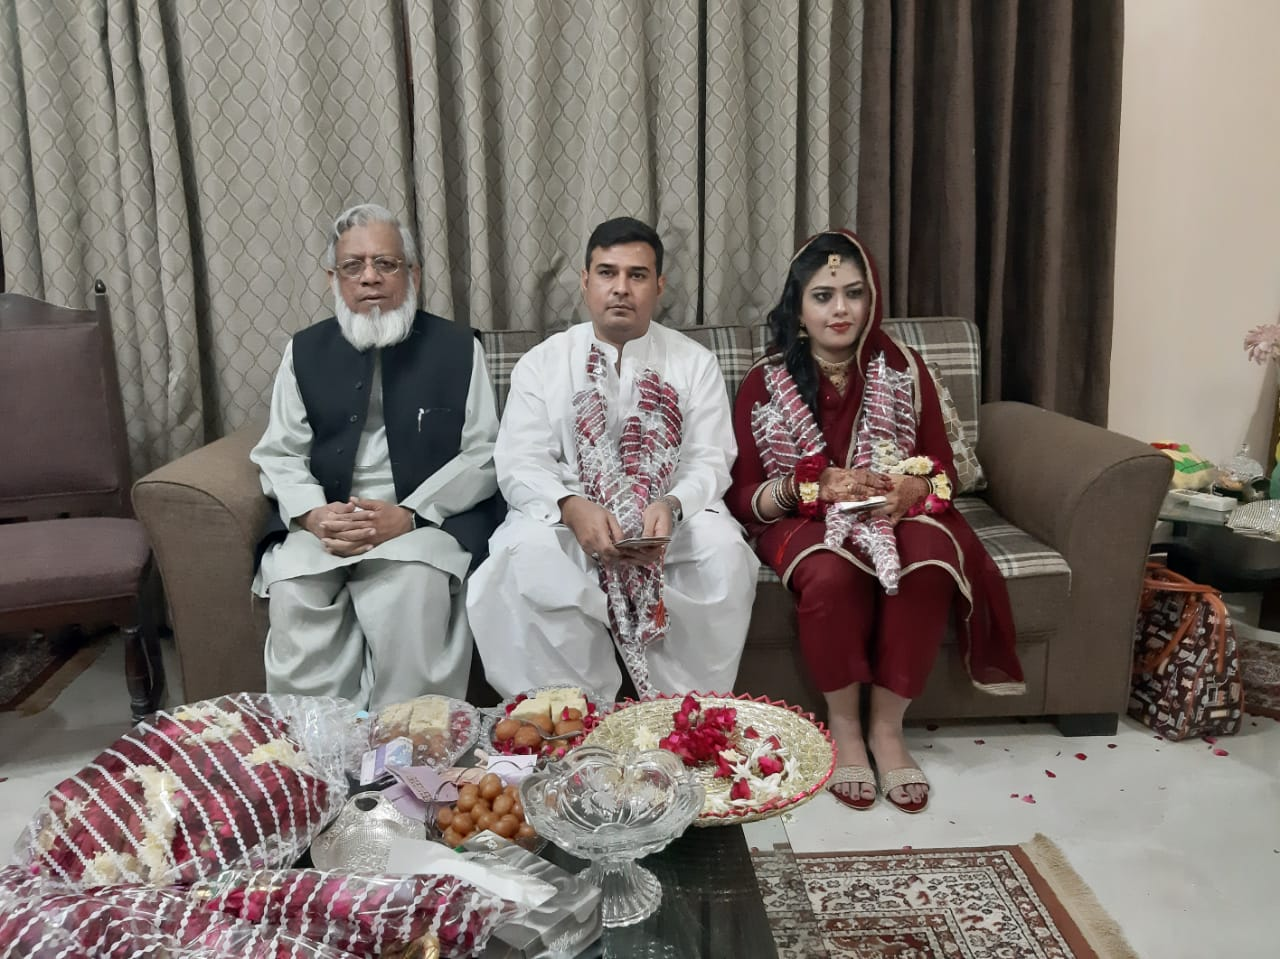 Engr. Iqbal Ahmed Khan with Kamran and Bushra at the Engagement Ceremony